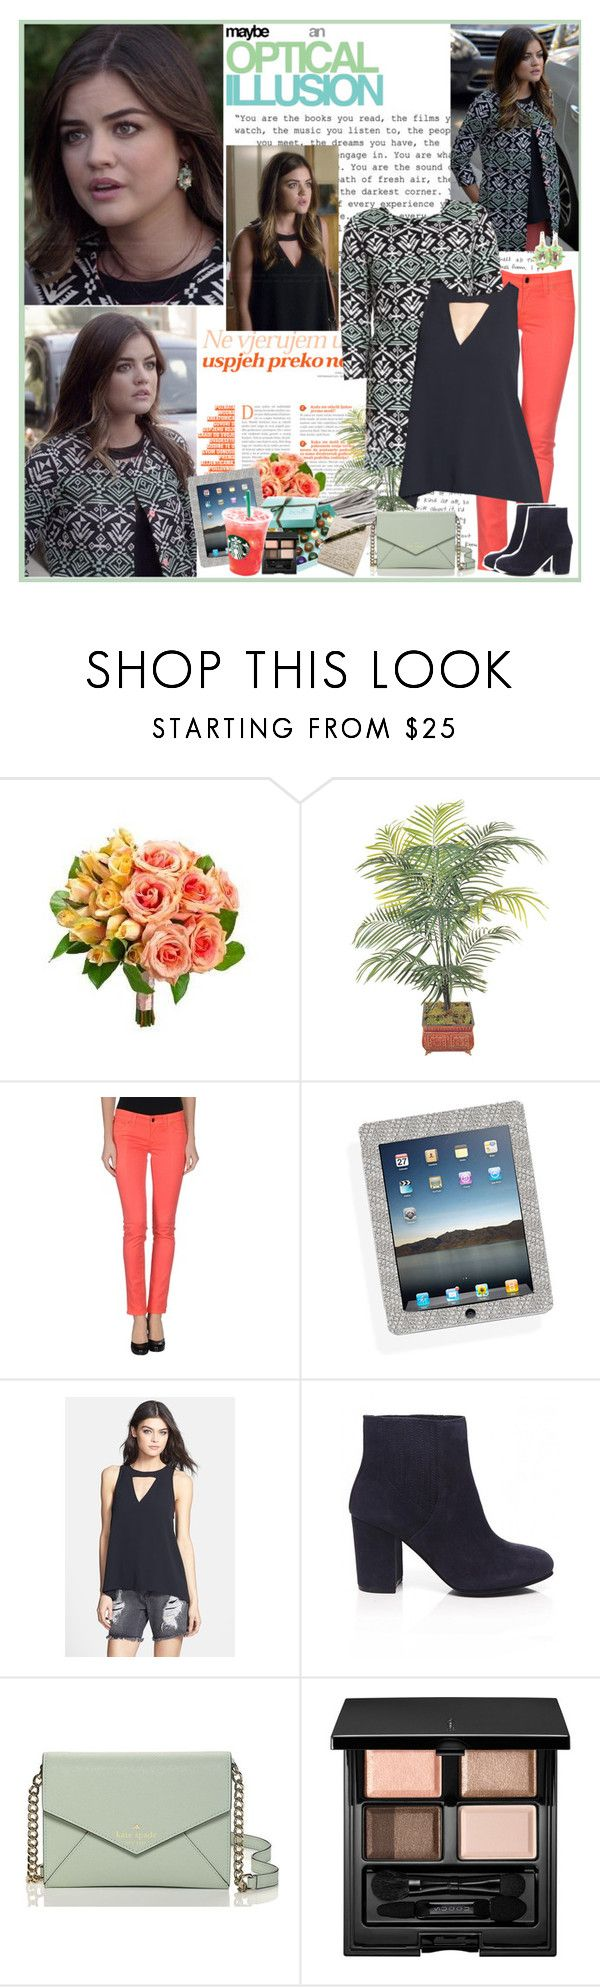 """""""Aria Montgomery"""" by mery90 ❤ liked on Polyvore featuring S.O.S By Orza Studio, Leith, Ash, Hostess, Kate Spade, SUQQU, OPTIONS, women's clothing, women and female"""